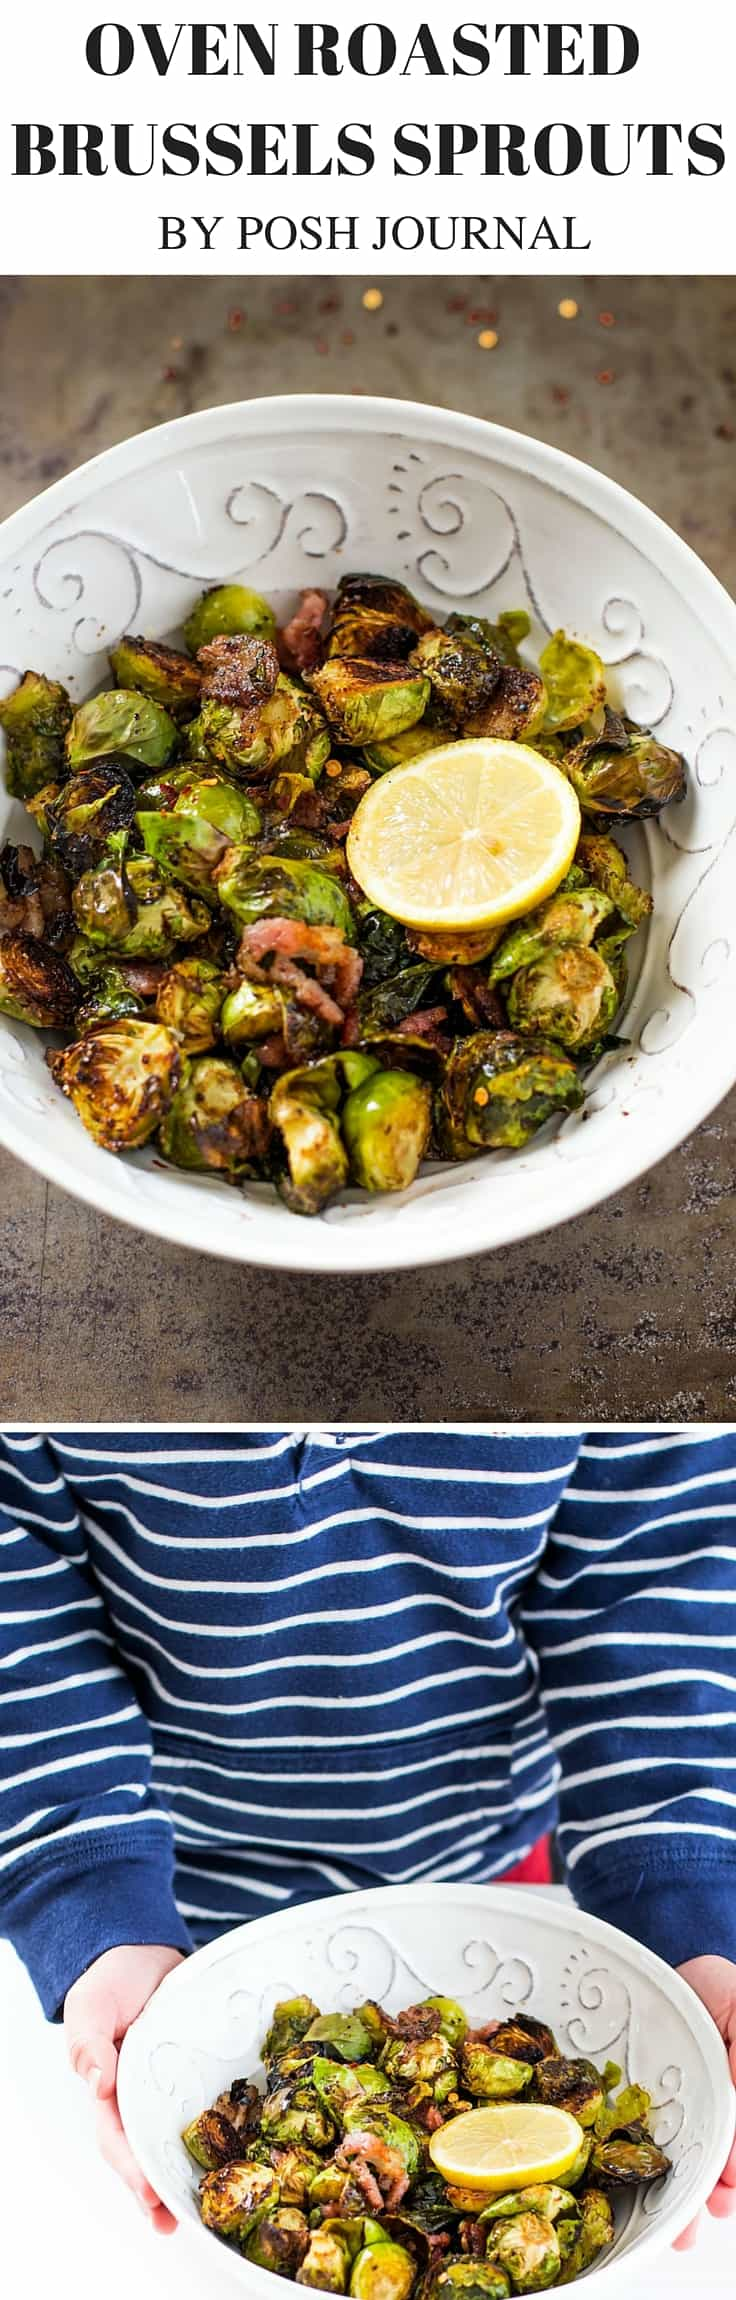 Oven Roasted Brussels Sprouts with Balsamic Vinegar and Bacon